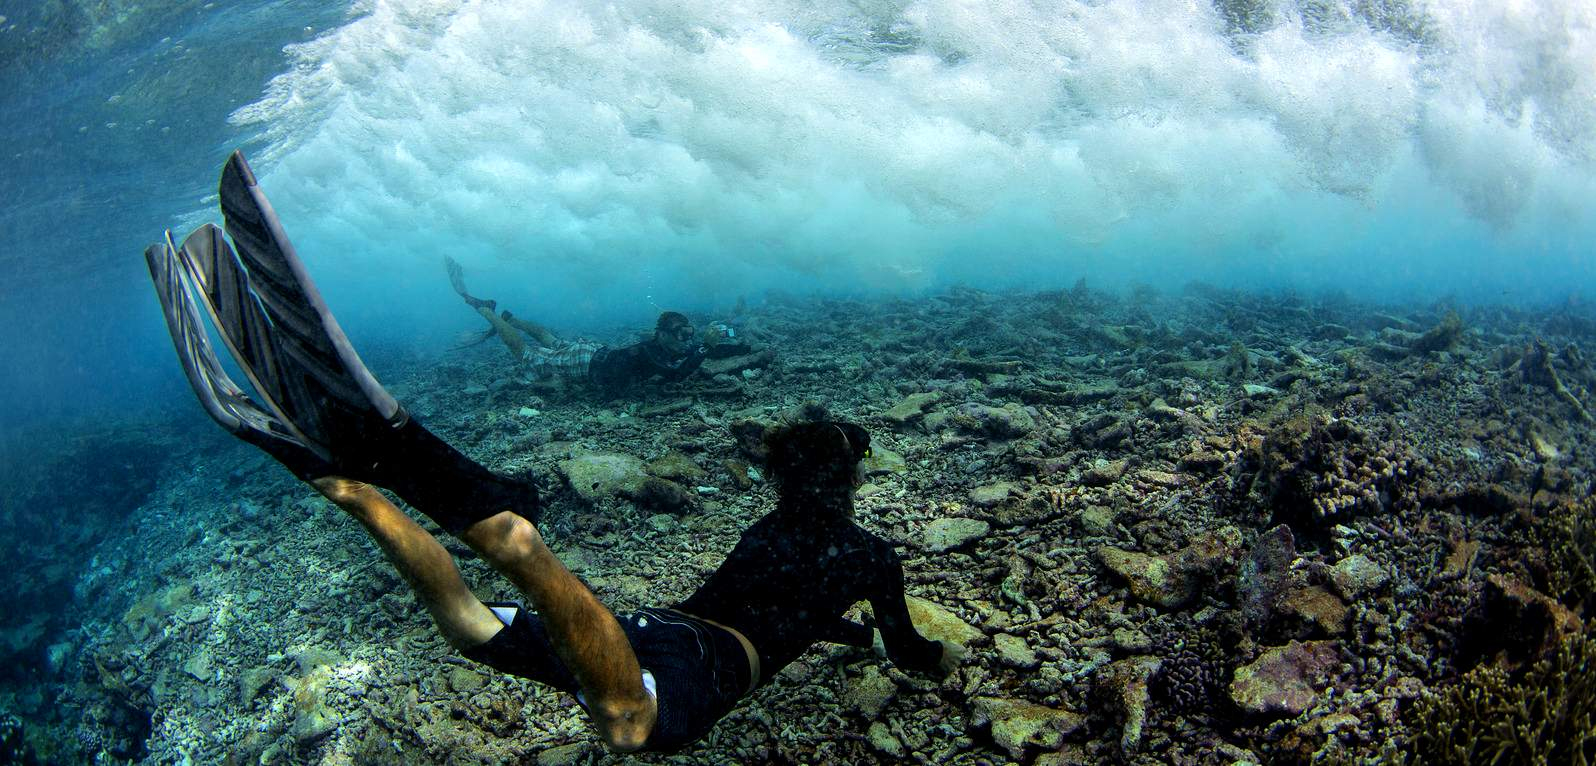 Divers photographing a dying reef